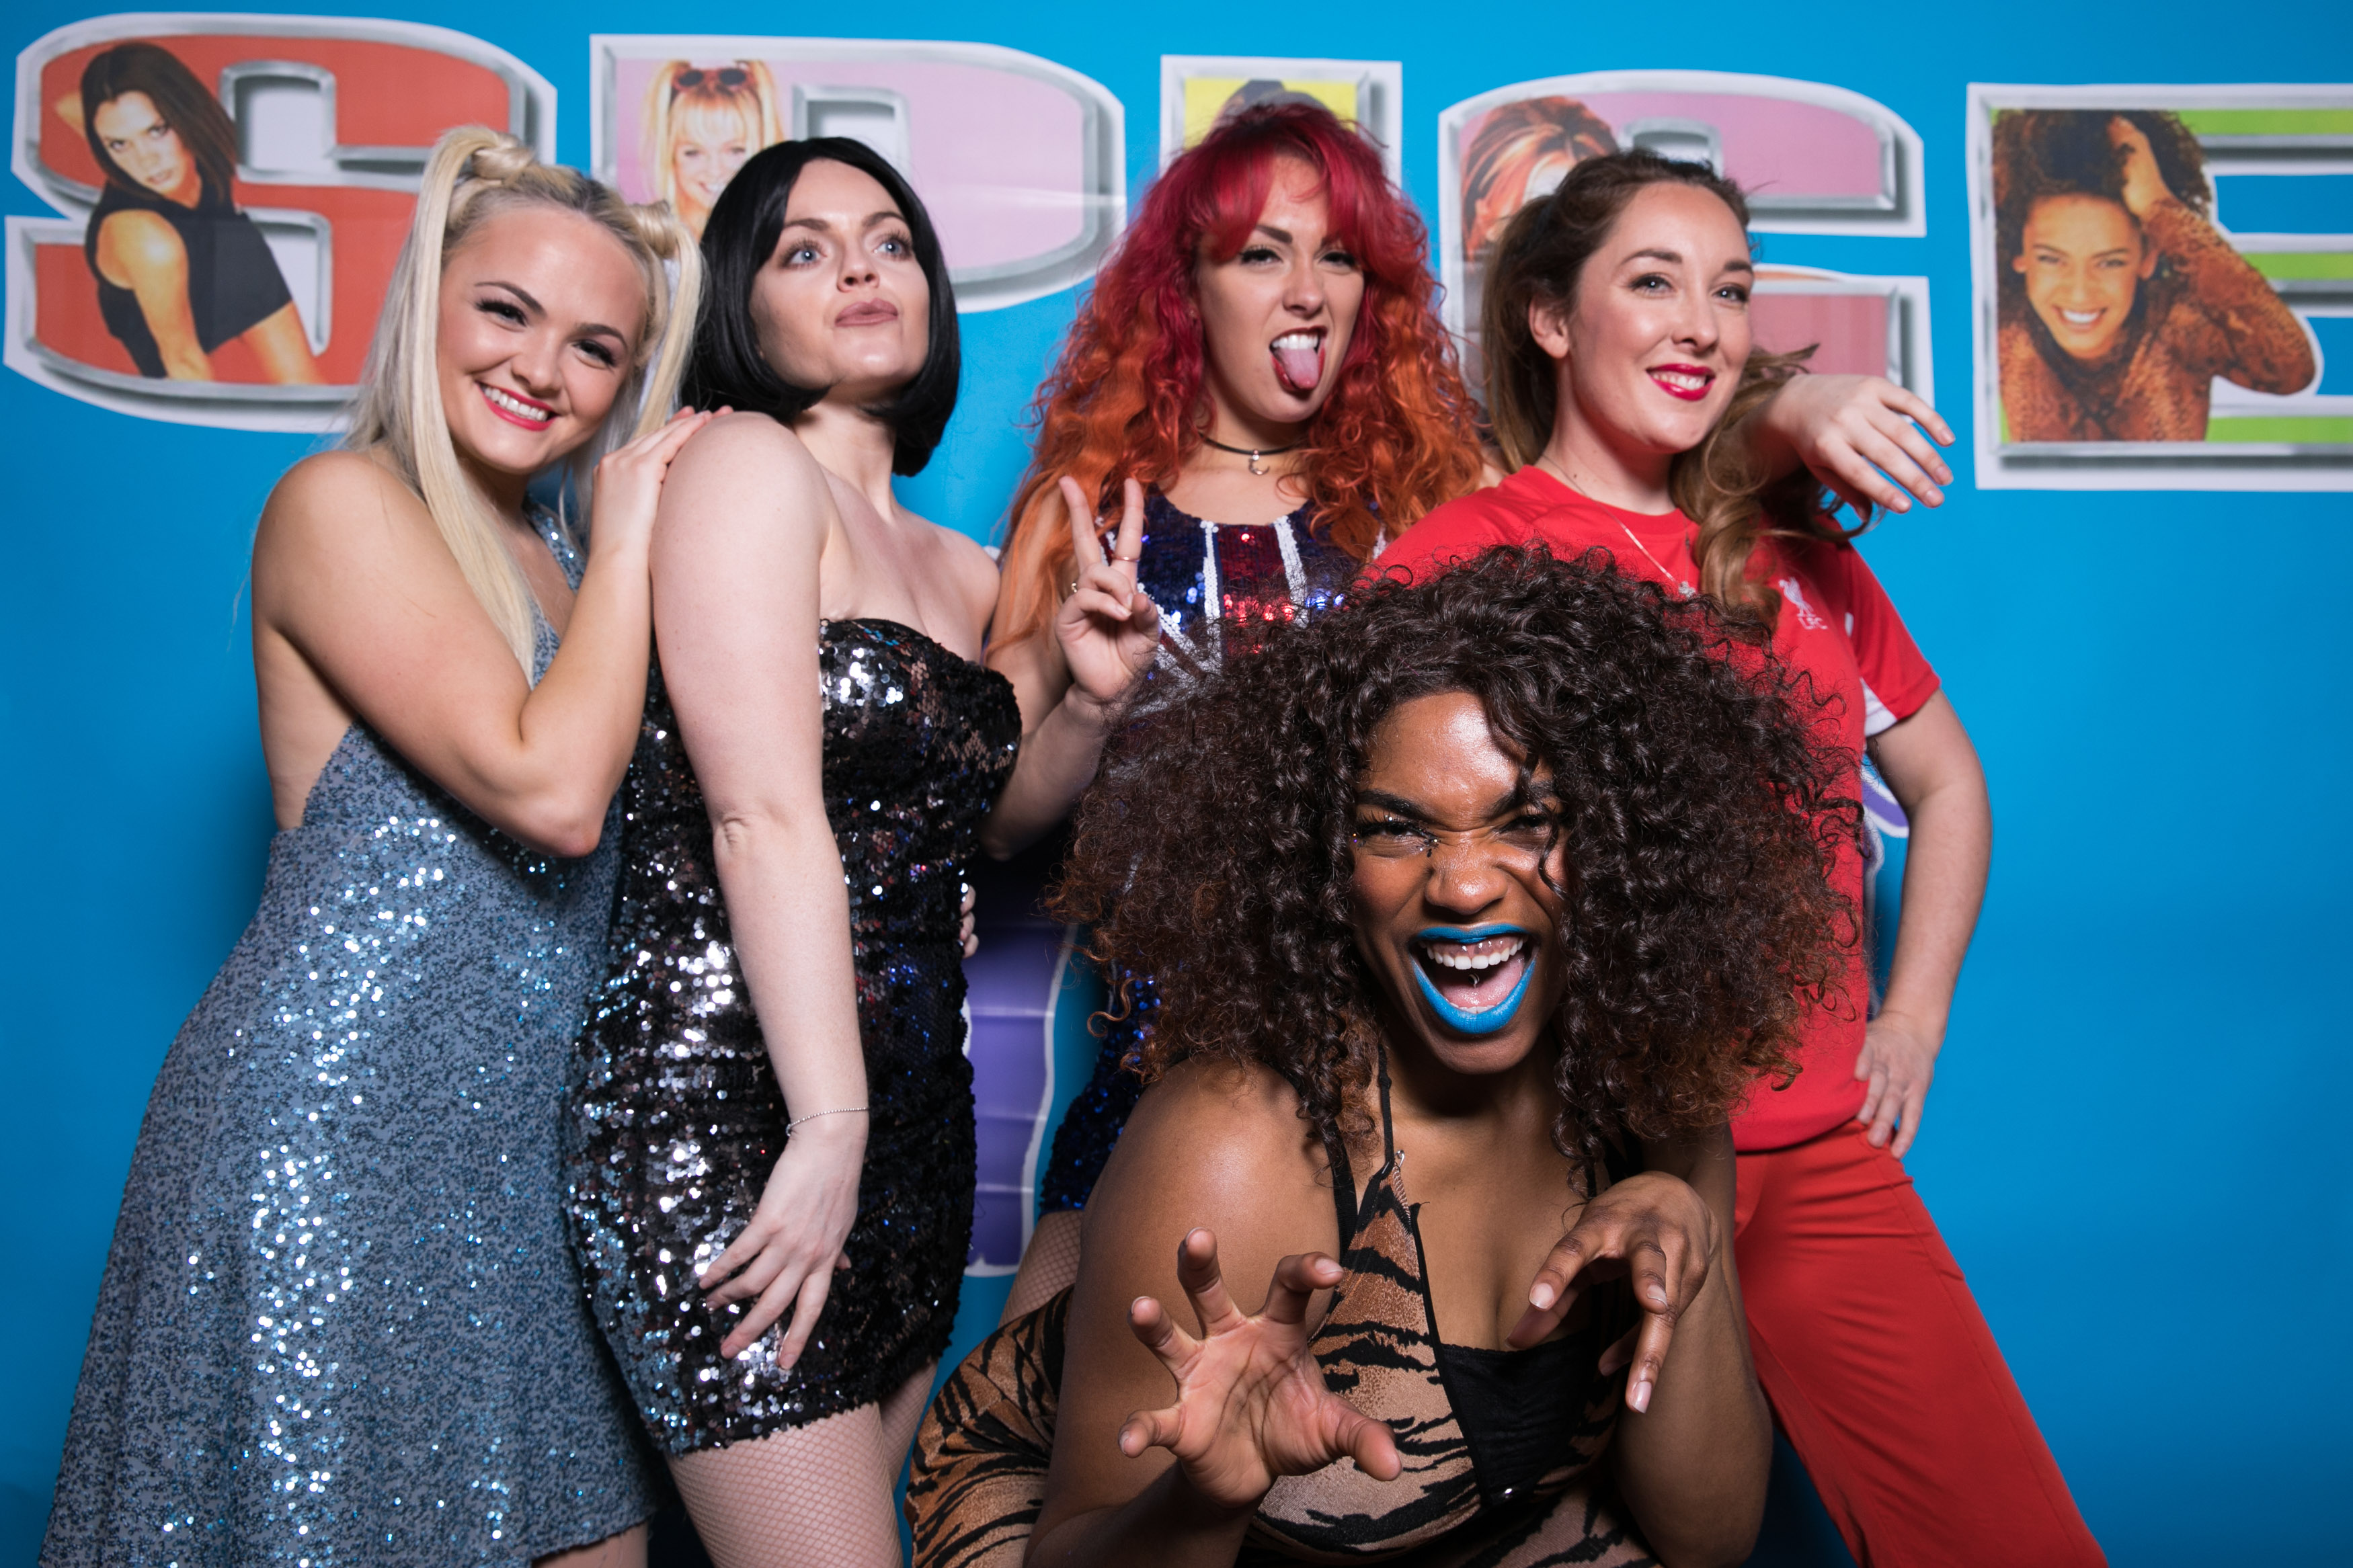 The Ultimate Spice Girls Party Feat. Spice Gals LIVE